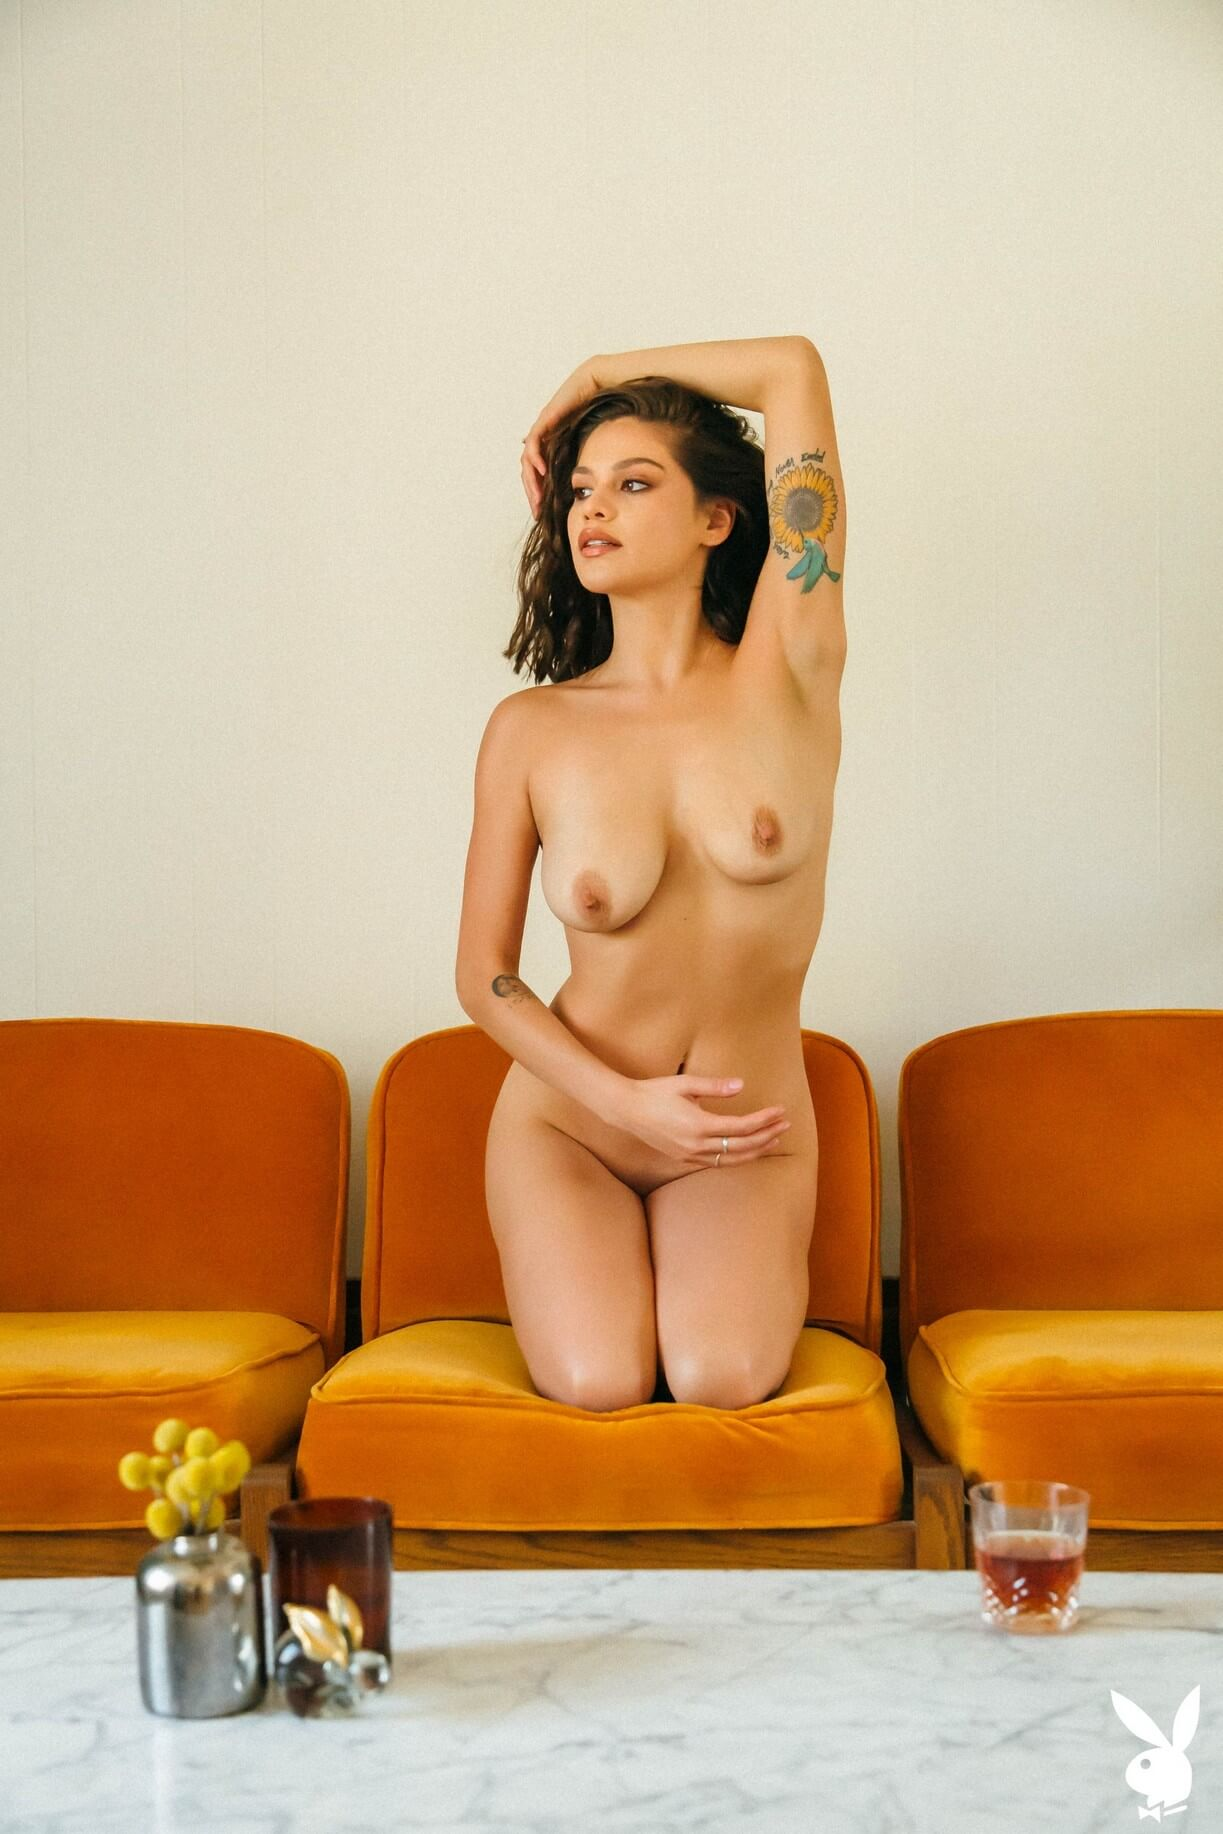 """PlayboyPlus – Natalie Del Real nude in """"The Simple Things"""" (7 pics)"""